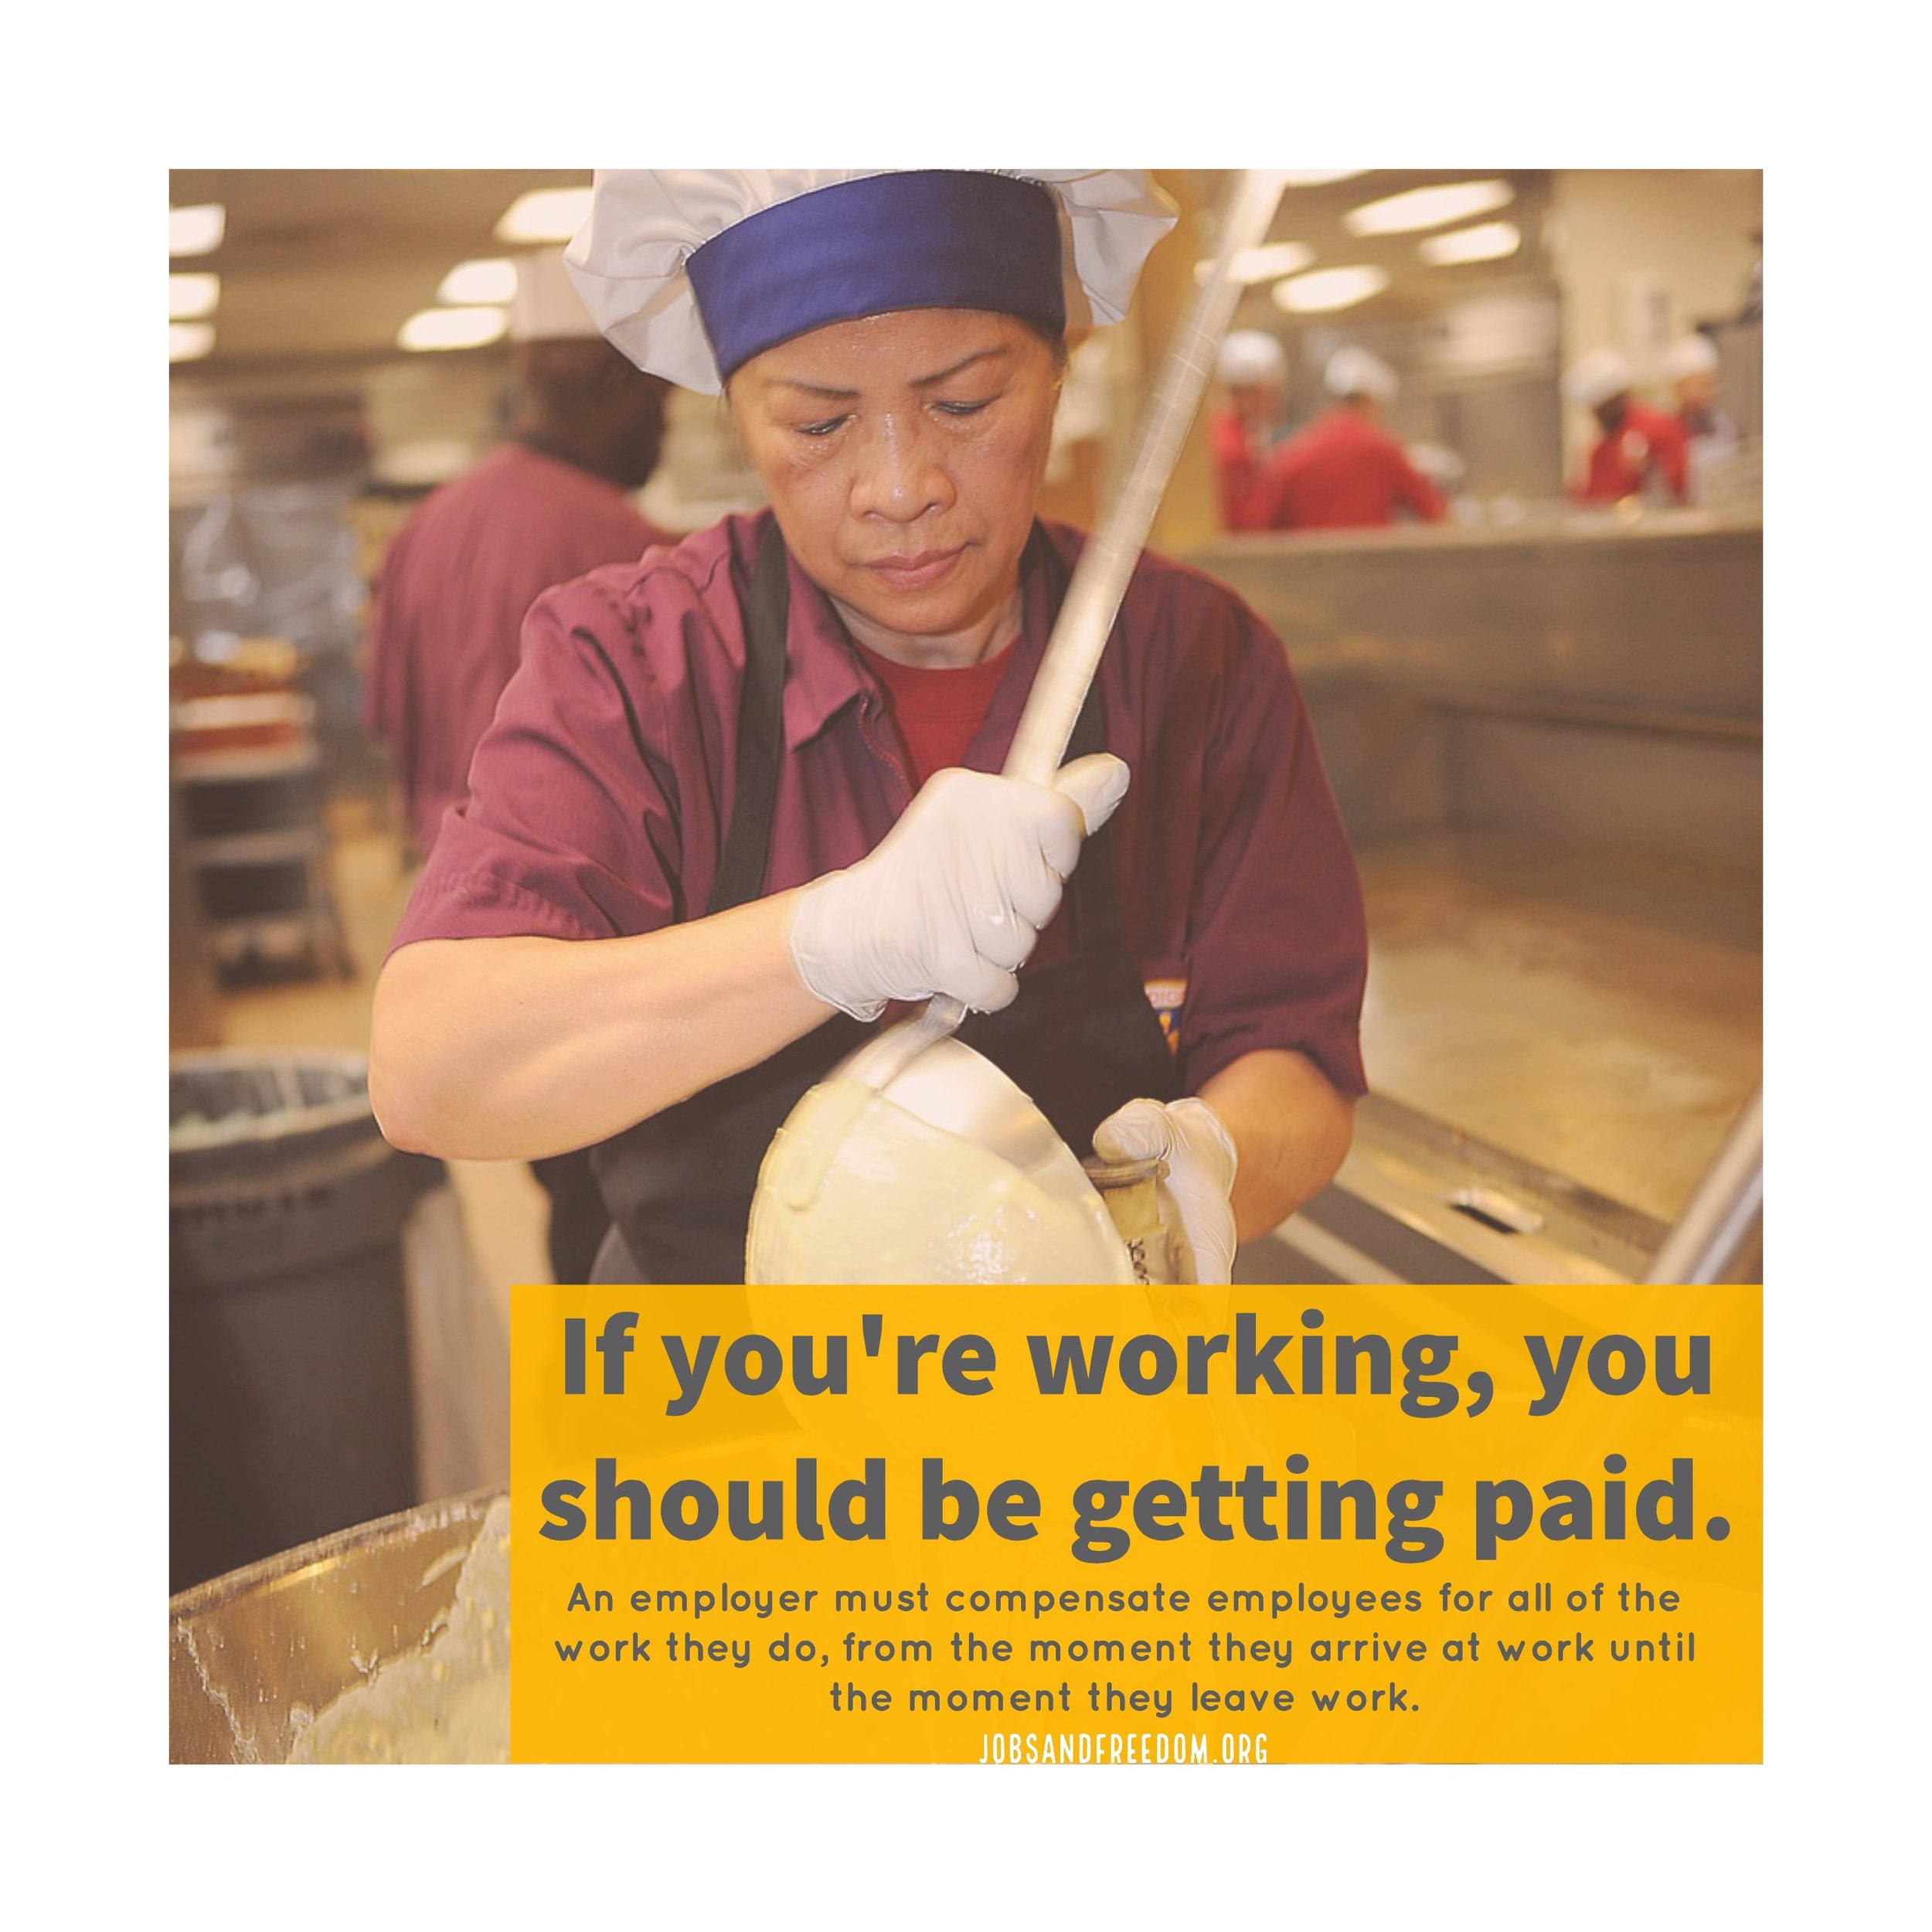 If you're working, you should be getting paid. An employer must compensate employees for all of the work they do, from the moment they arrive at work until the moment they leave work.